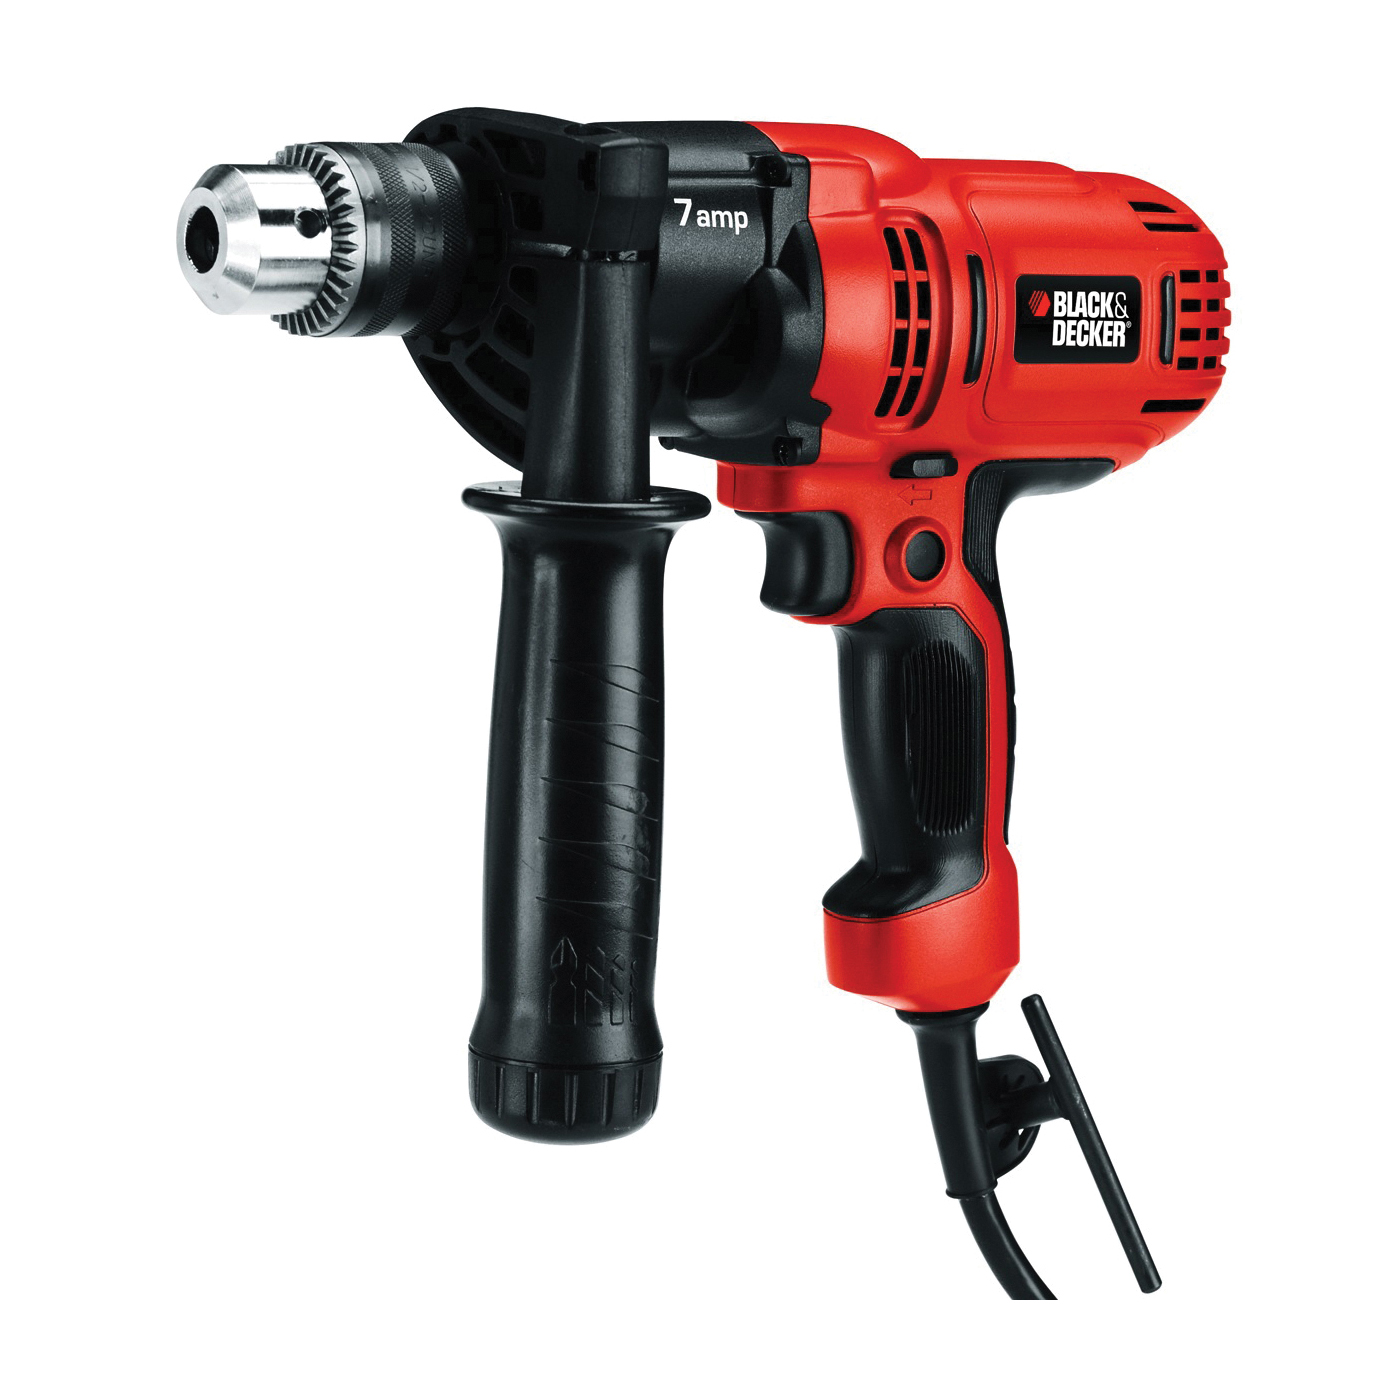 Picture of Black+Decker DR560 Drill/Driver, 1/2 in Steel, 1-1/2 in Wood Drilling, 1/2 in Chuck, Keyed Chuck